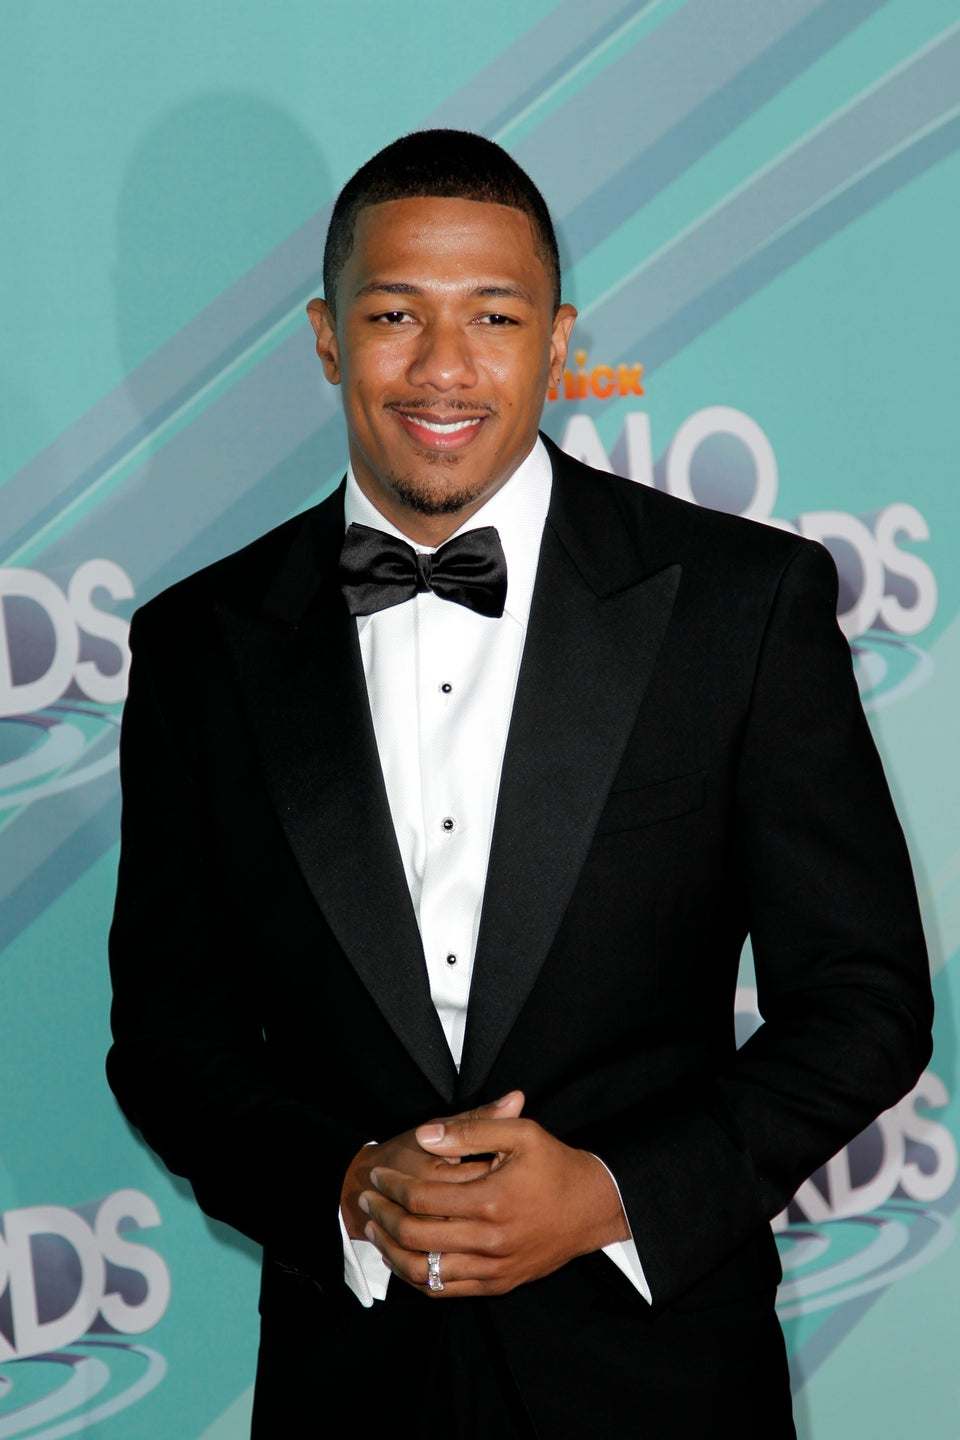 What Caused Nick Cannon's 'Kidney Failure'?